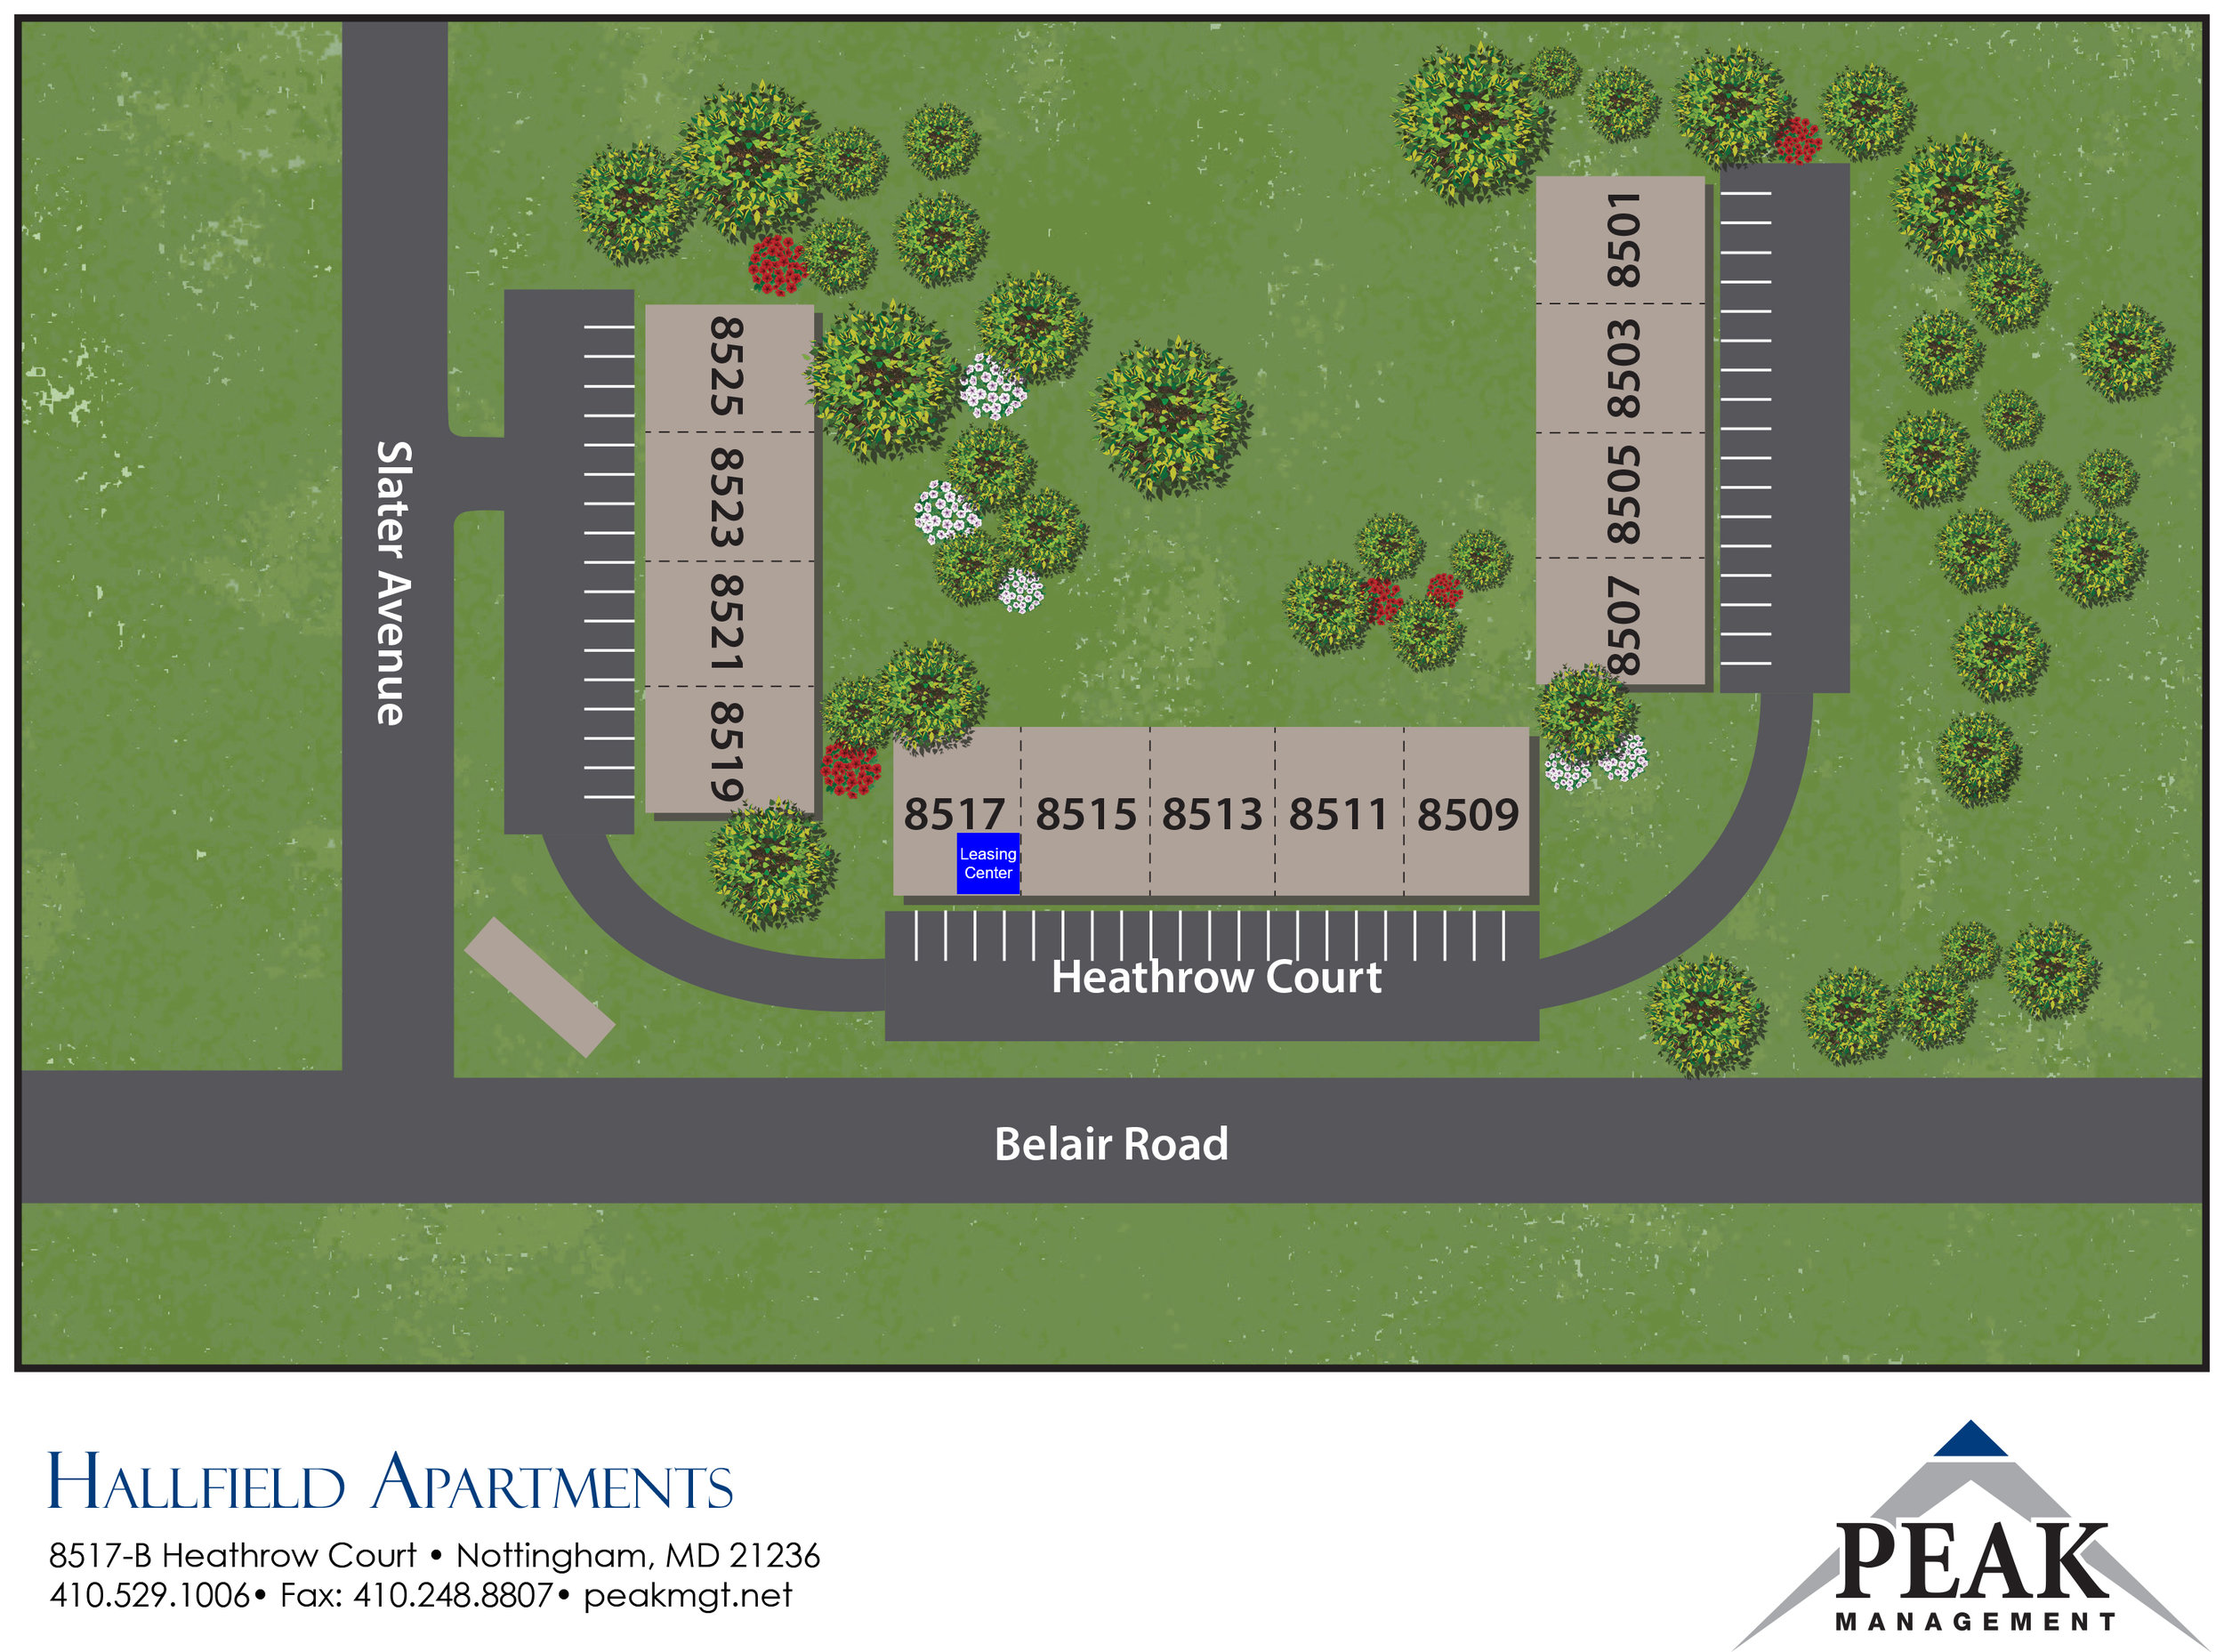 Site Map of Hallfield Apartments in Perry Hall, MD